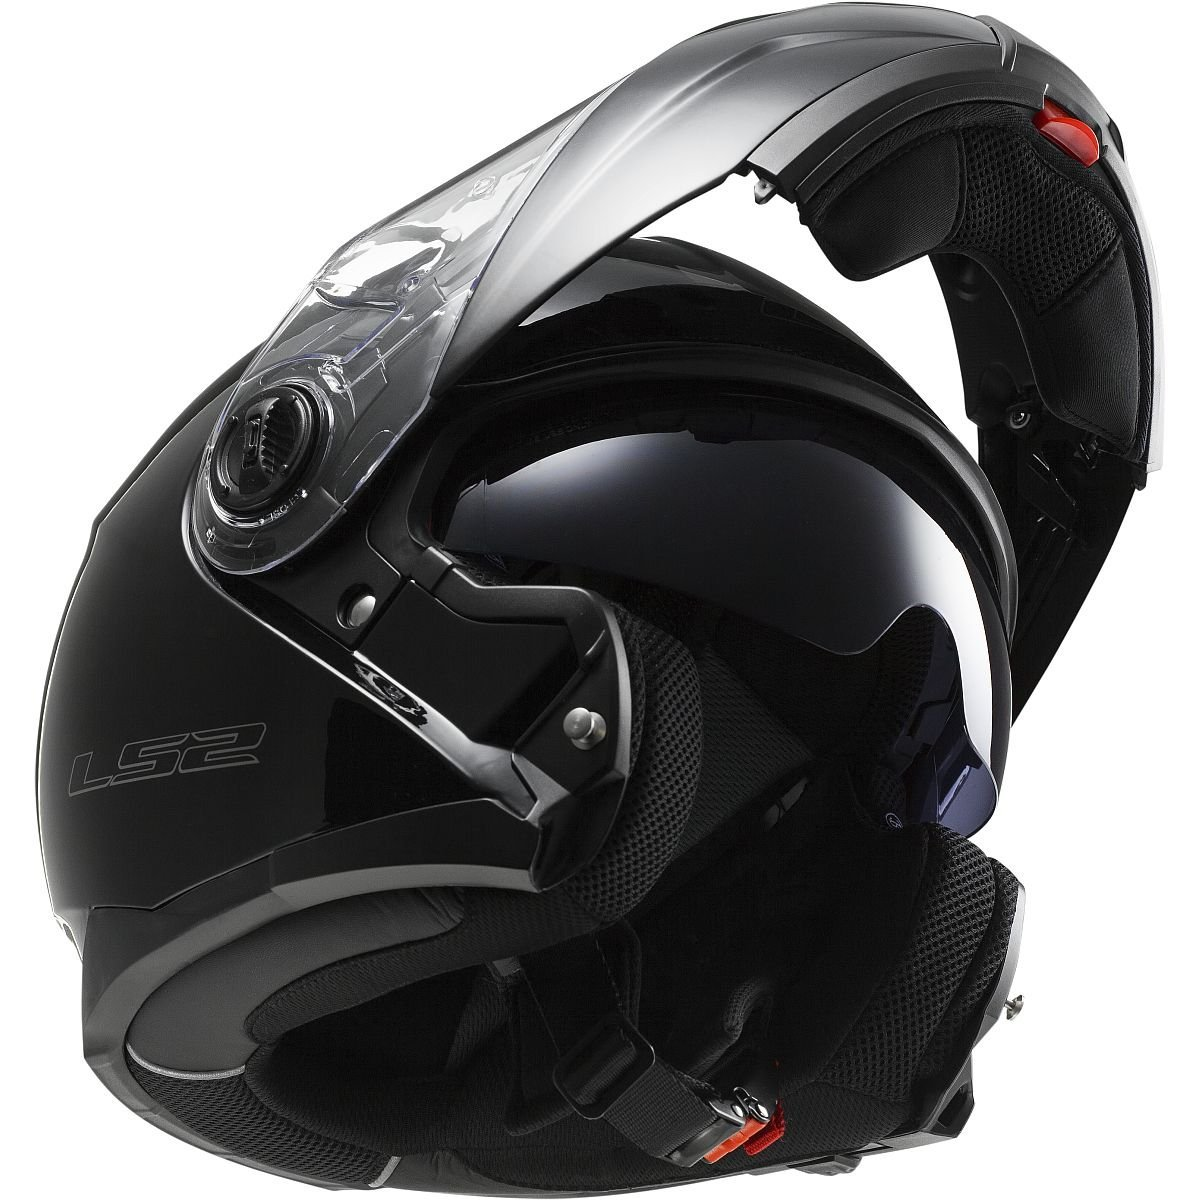 LS2 Helmets Strobe Solid Modular Motorcycle Helmet with sunshield (Gloss Black, XX-Large)